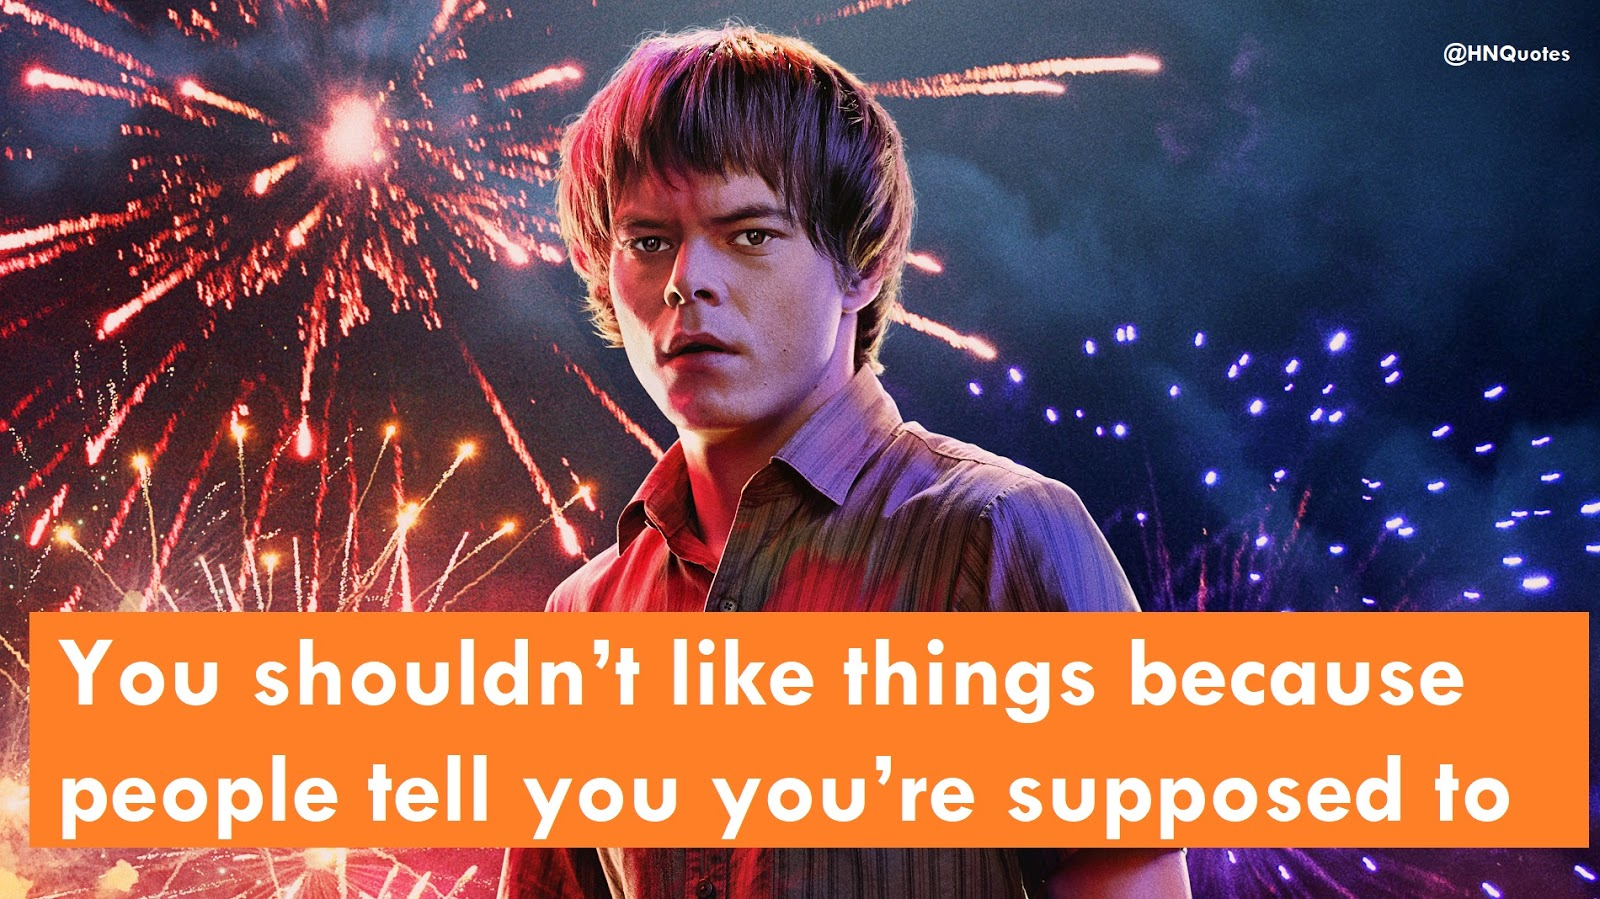 Jonathan-Byers-Quotes-Will-Byers-Stranger-Things-[HNQuotes]